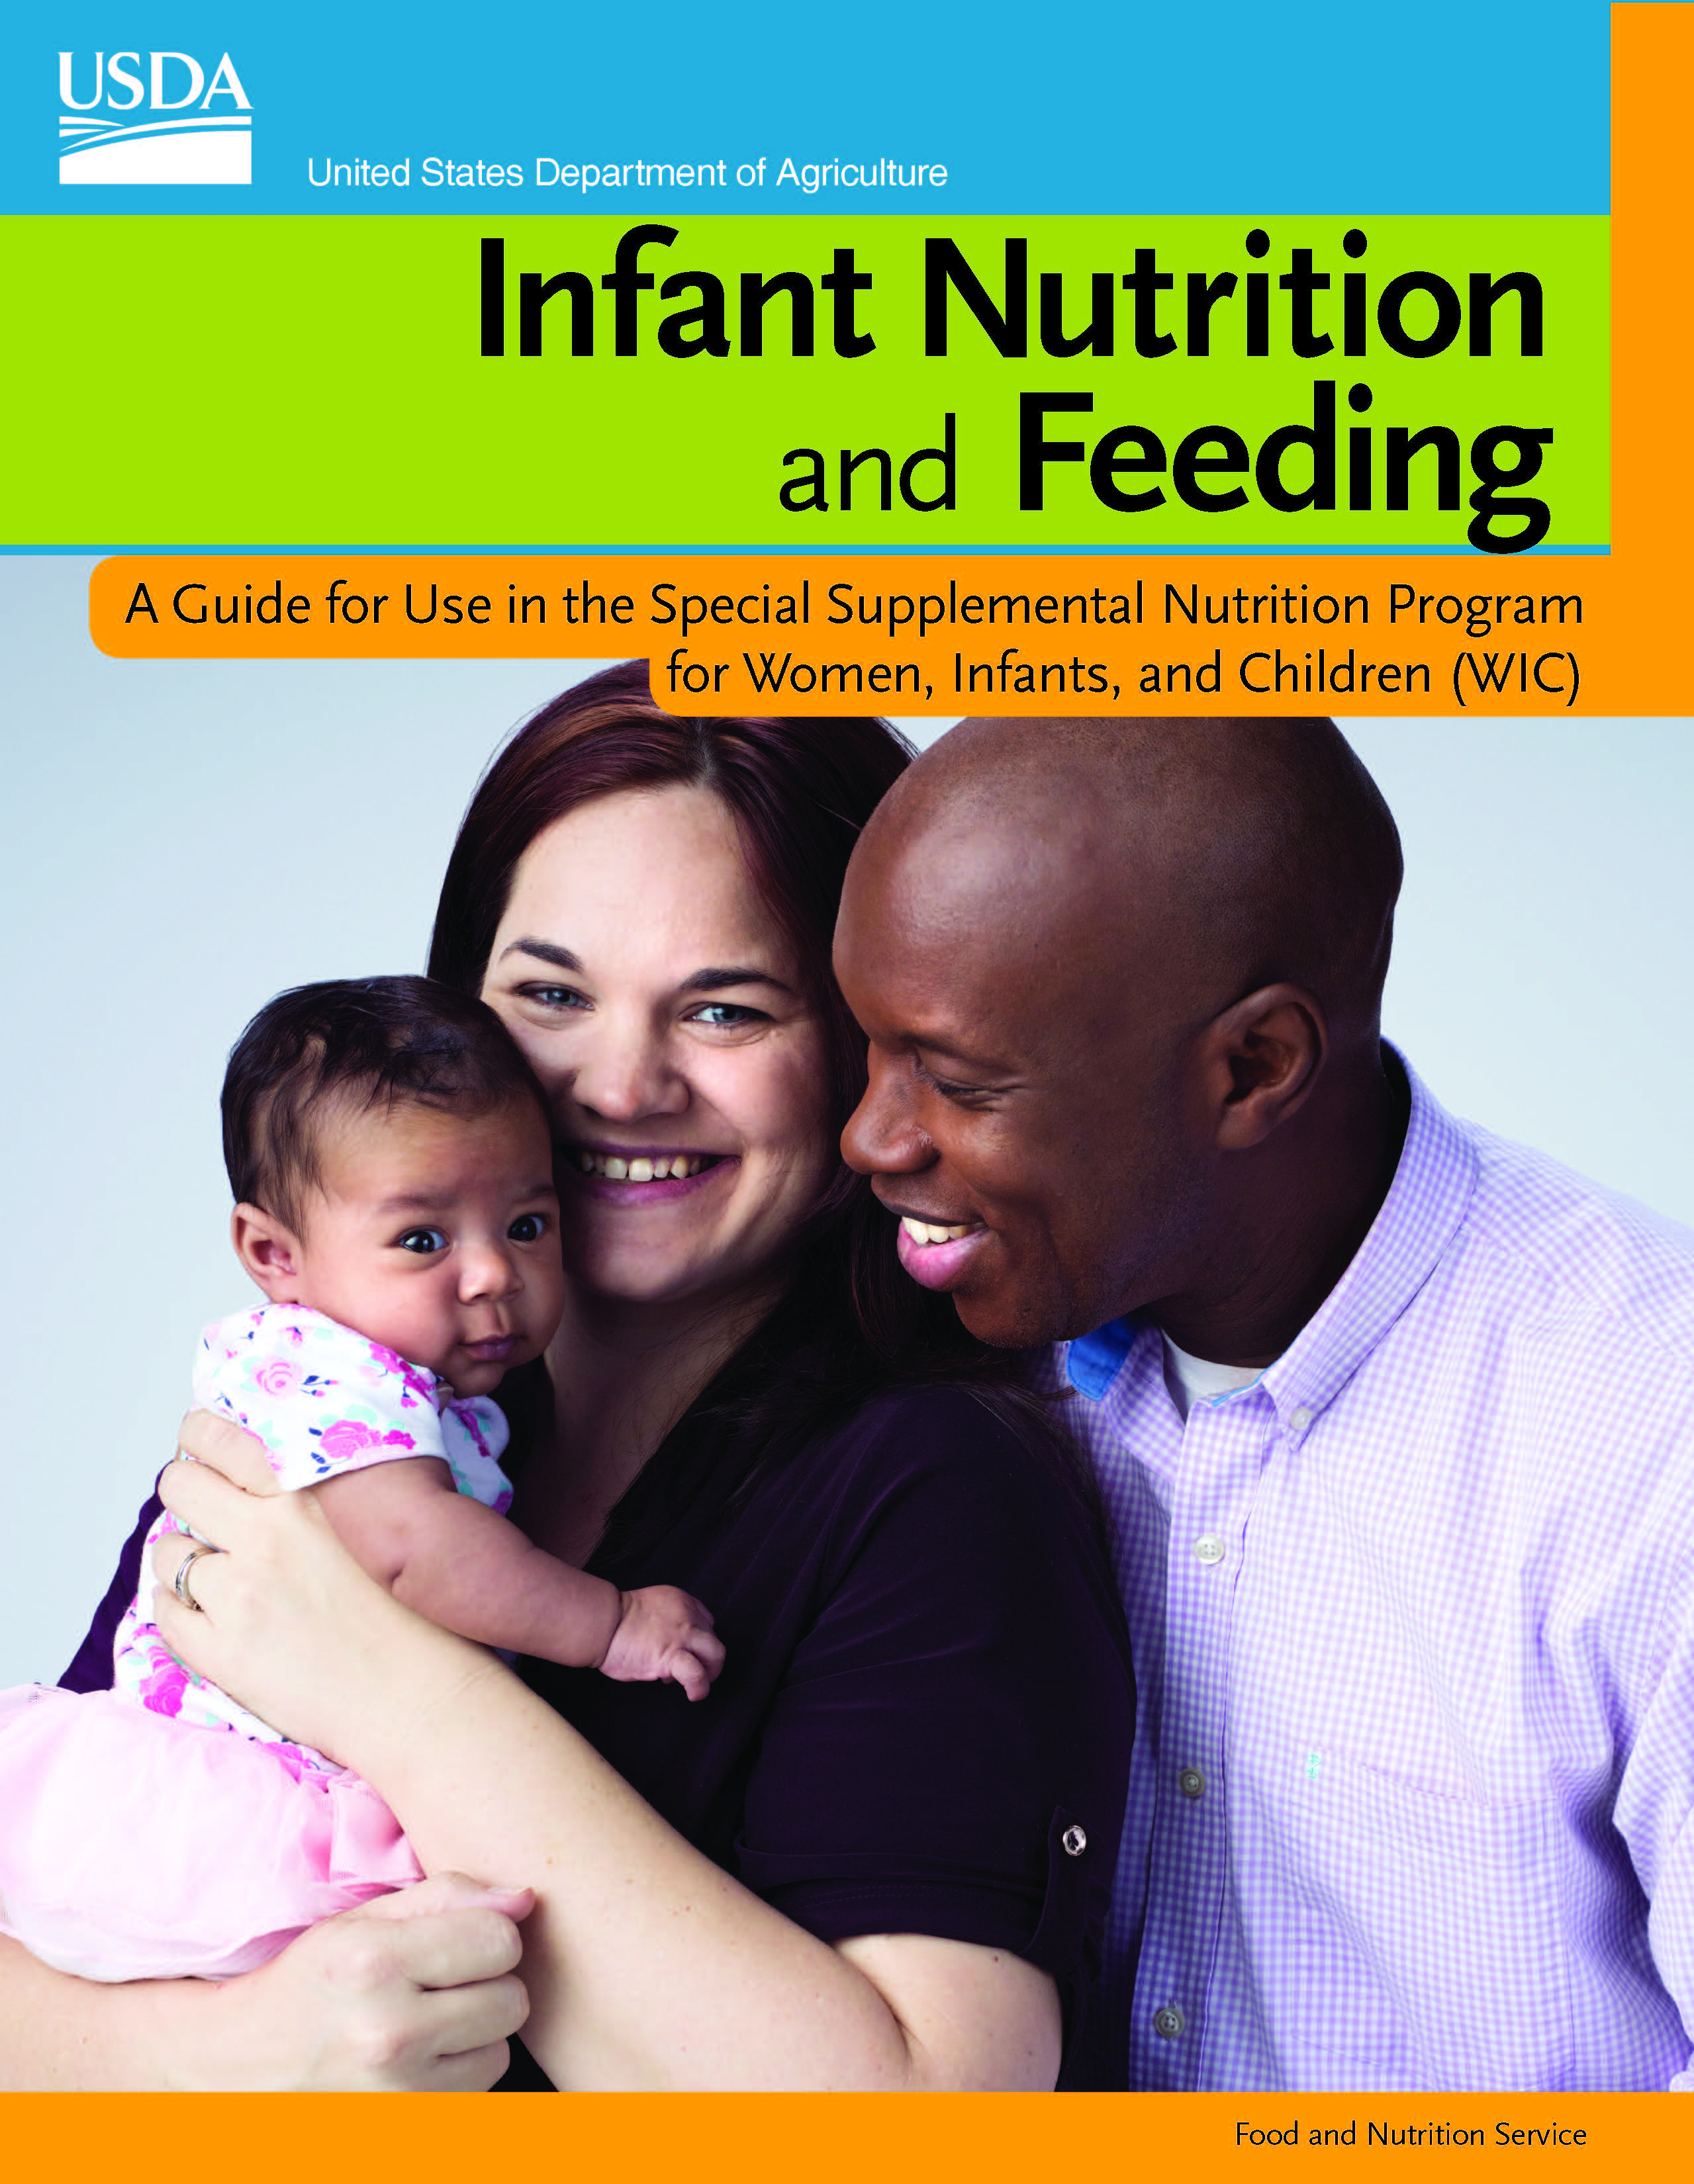 WIC Infant Nutrition and Feeding Guide